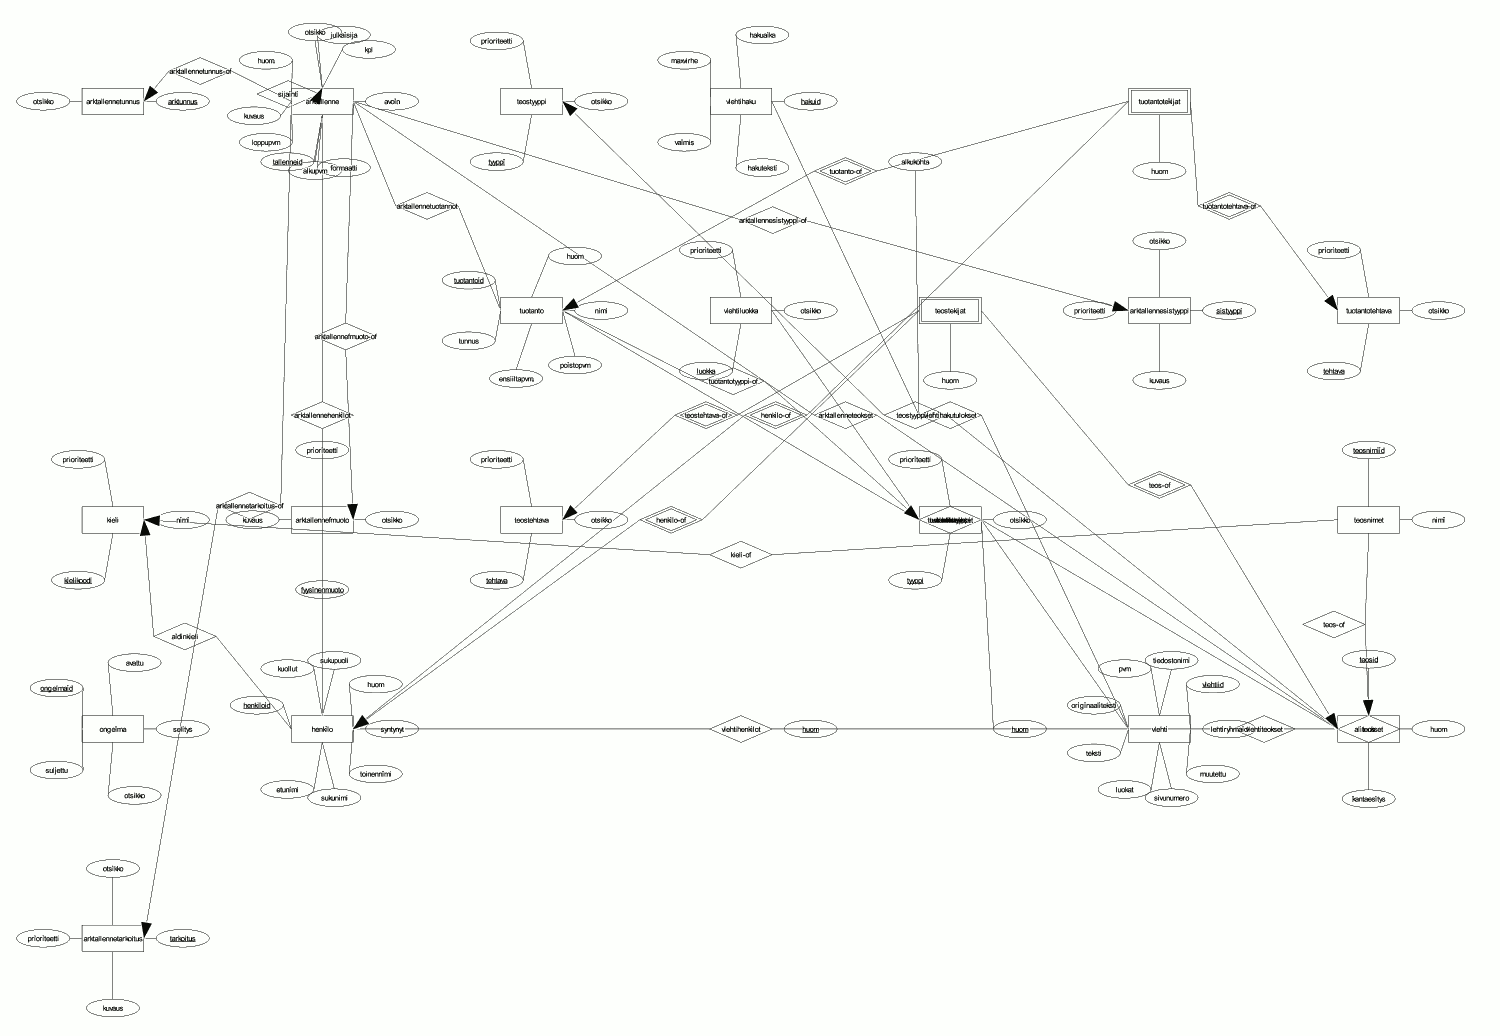 erd entity relationship diagram examples electrical wiring symbols fuse sql2diagram-sxd - generate openoffice.org compatible er diagrams from sql